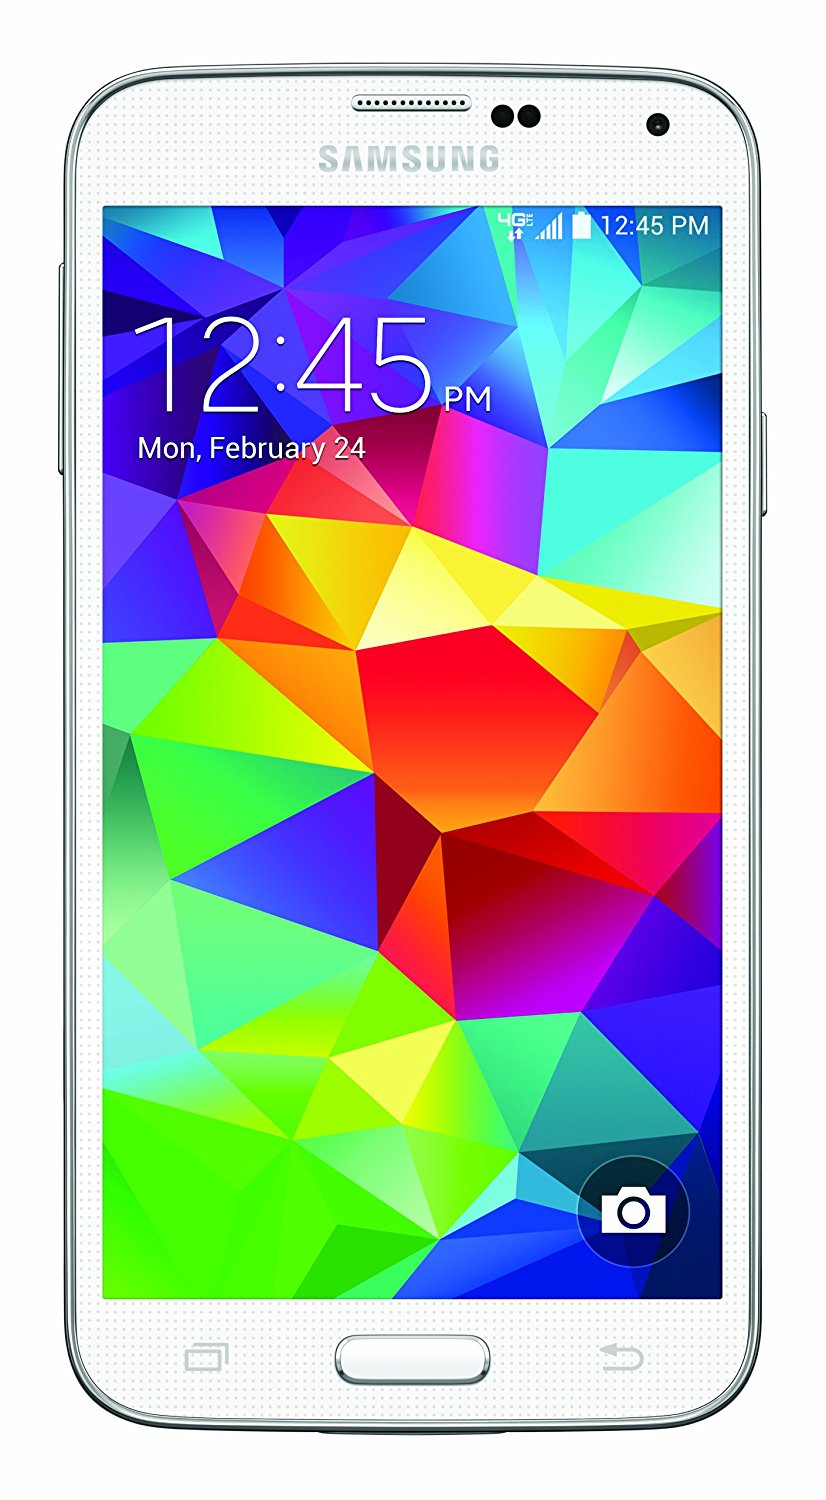 Samsung Galaxy S5 Mobile phone